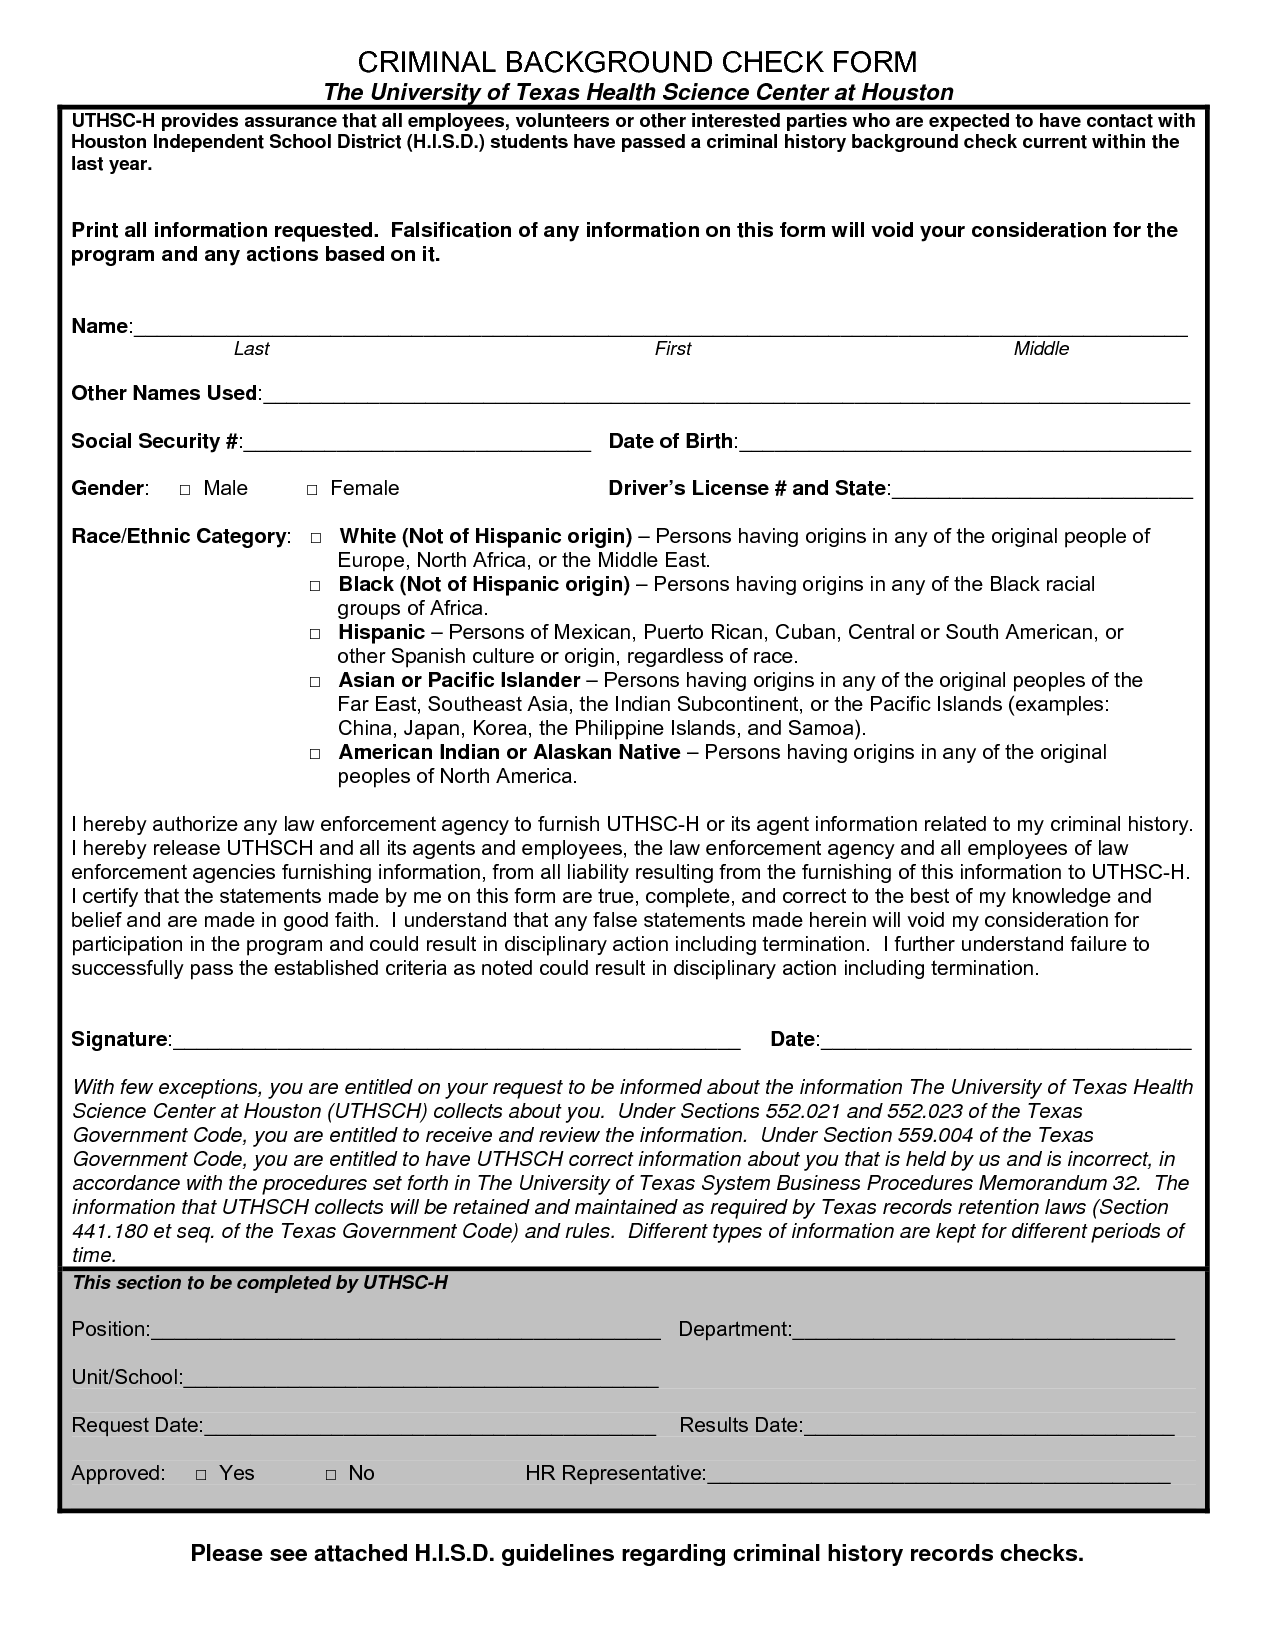 Criminal Background Check Form Template Check out this Background ...